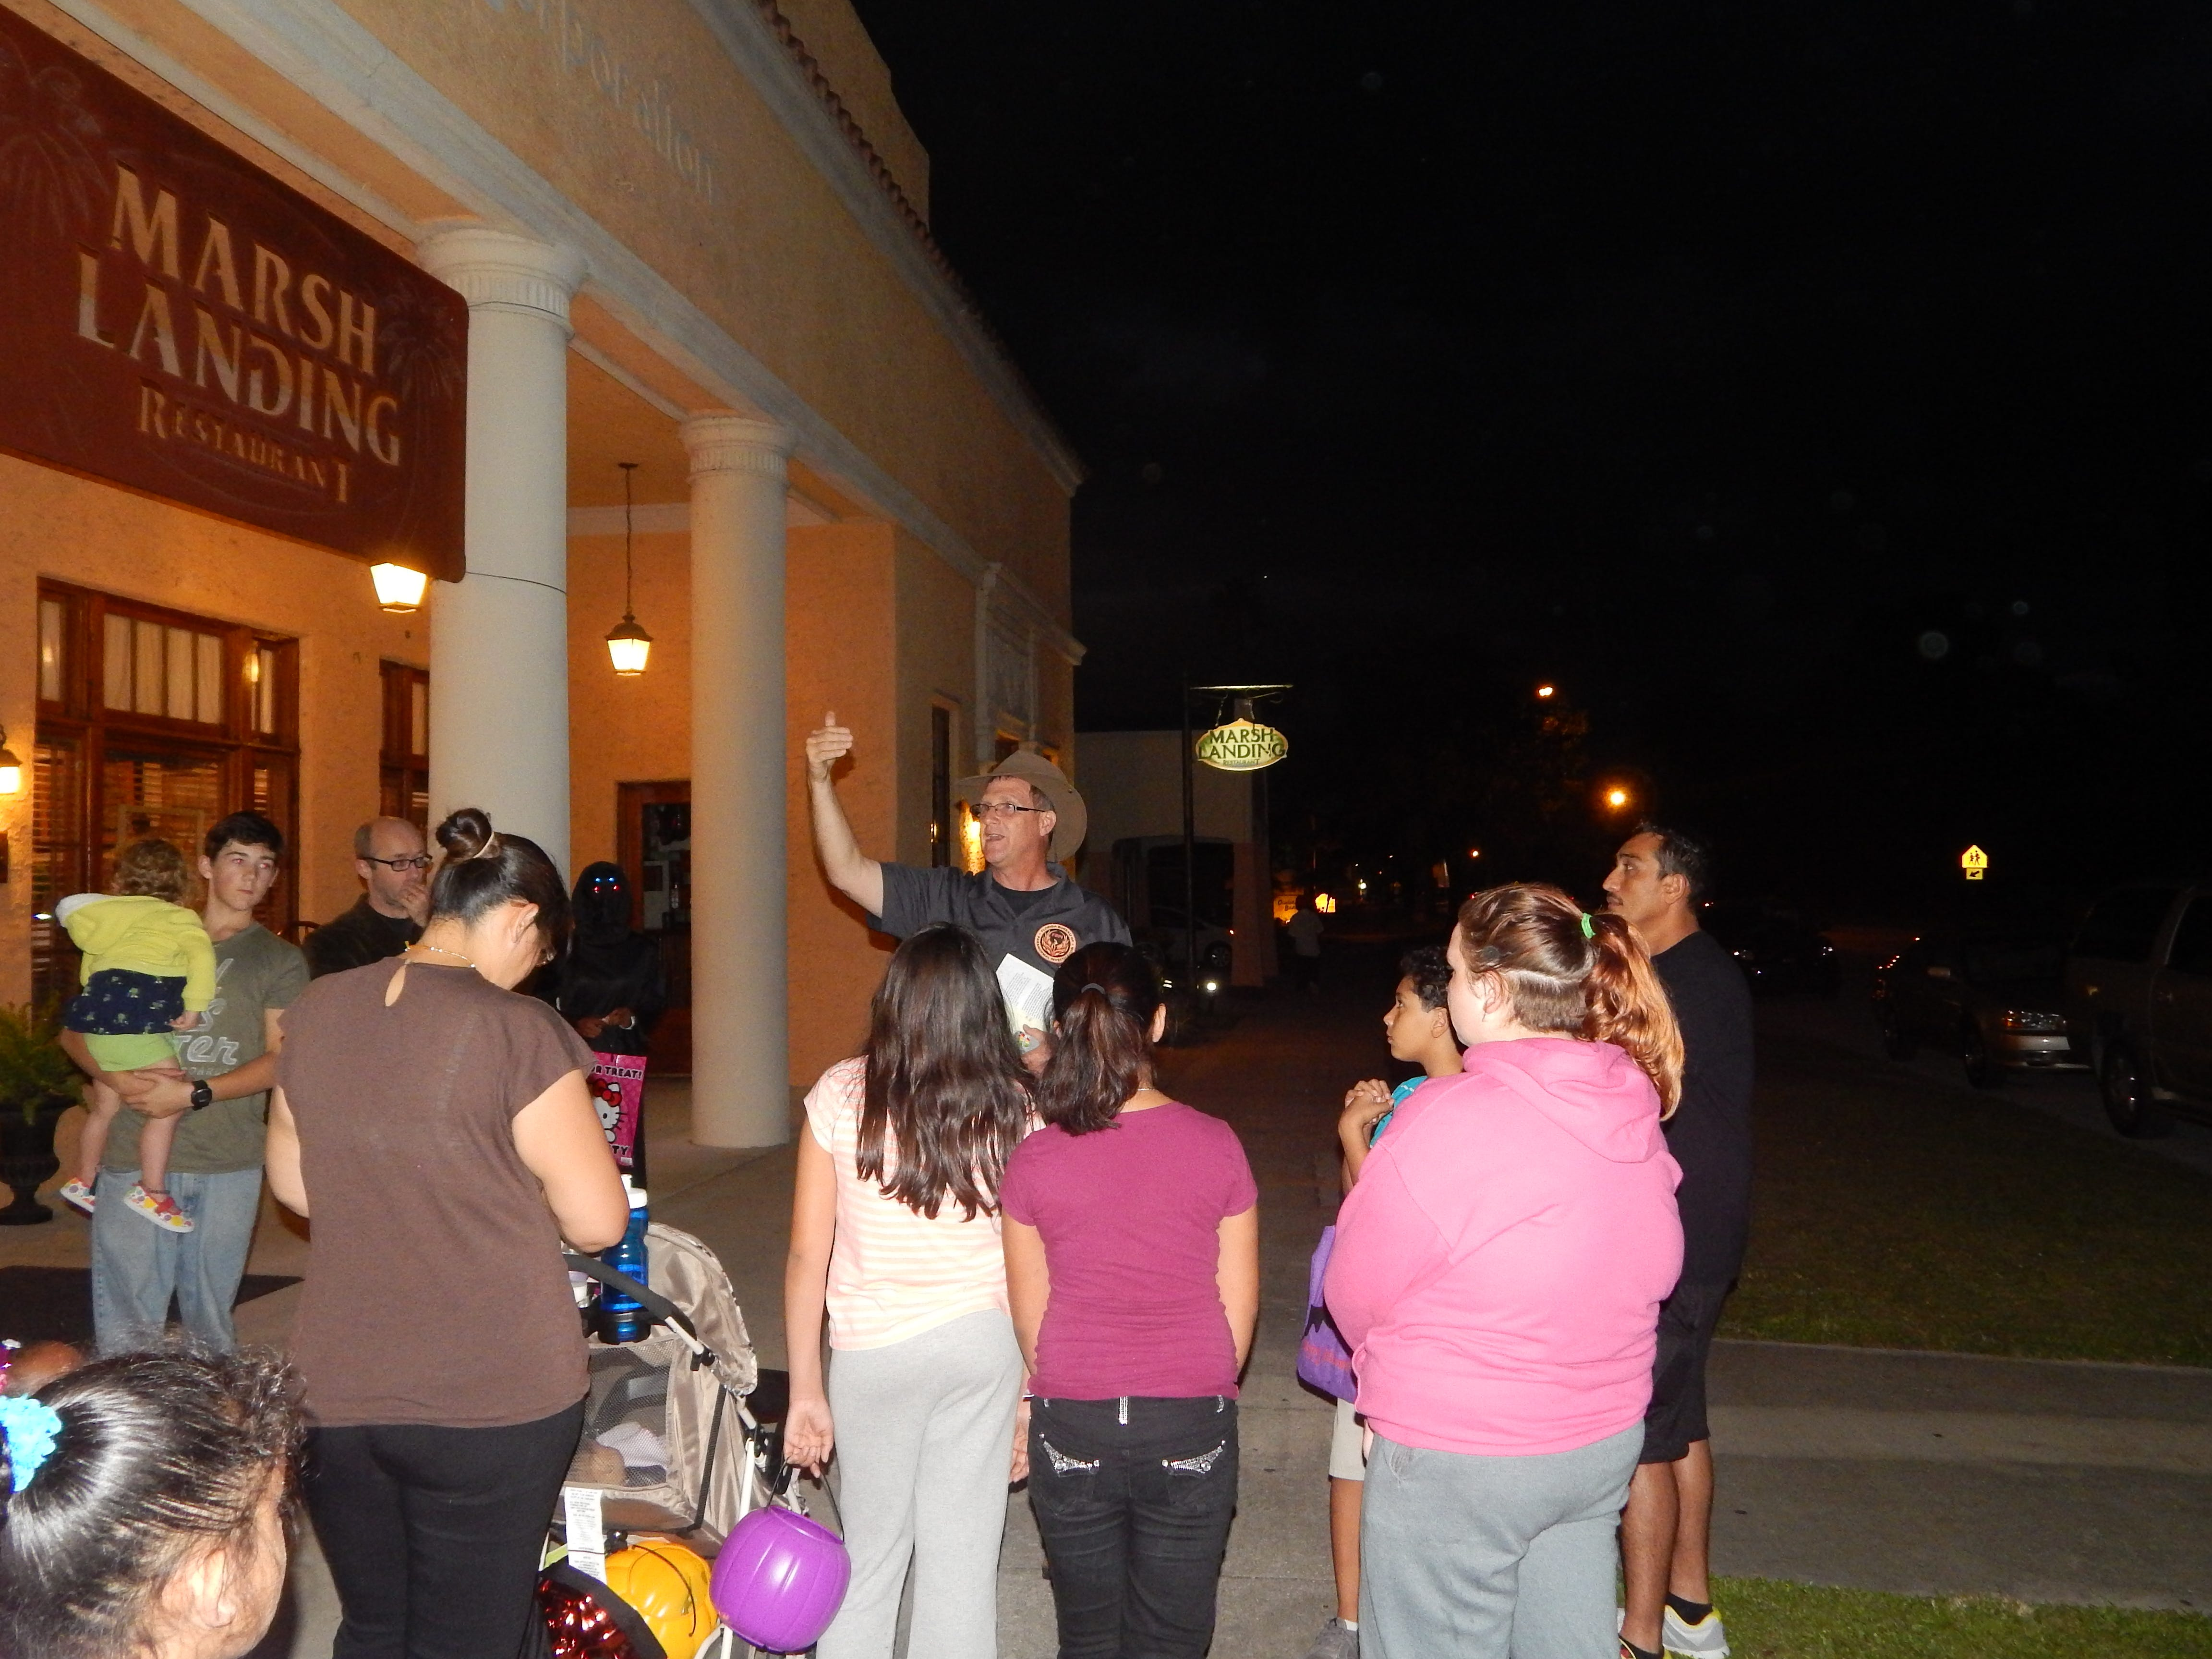 Paranormal activity meets history on the Indian River Hauntings ghost tours in Fellsmere, Vero Beach and Sebastian. Larry Lawson, a paranormal investigator, leads a Fellsmere tour in 2016.